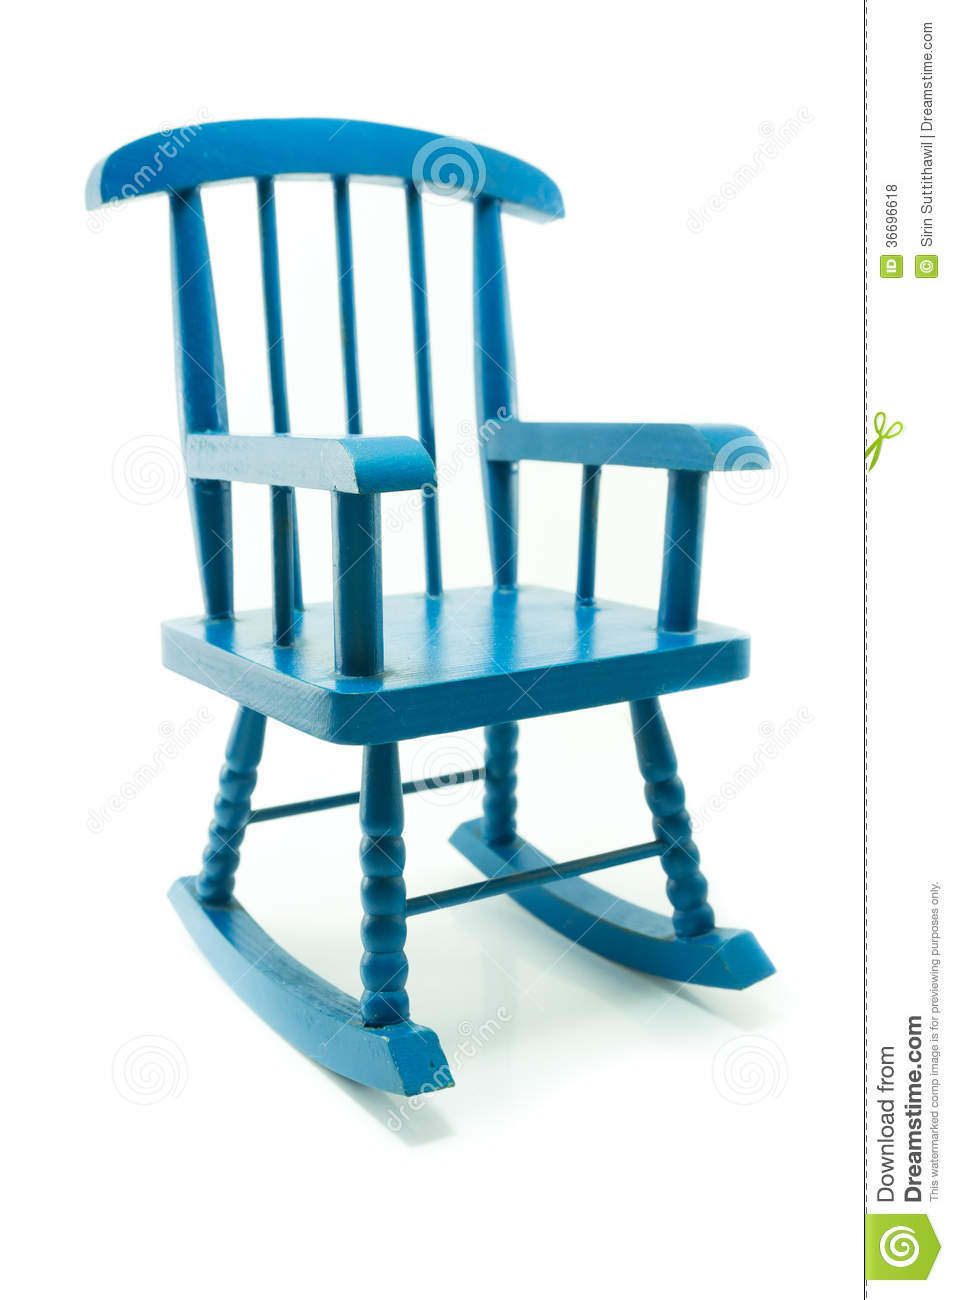 Retro Blue Rocking Chair In White Background Royalty Free Stock Photos ...